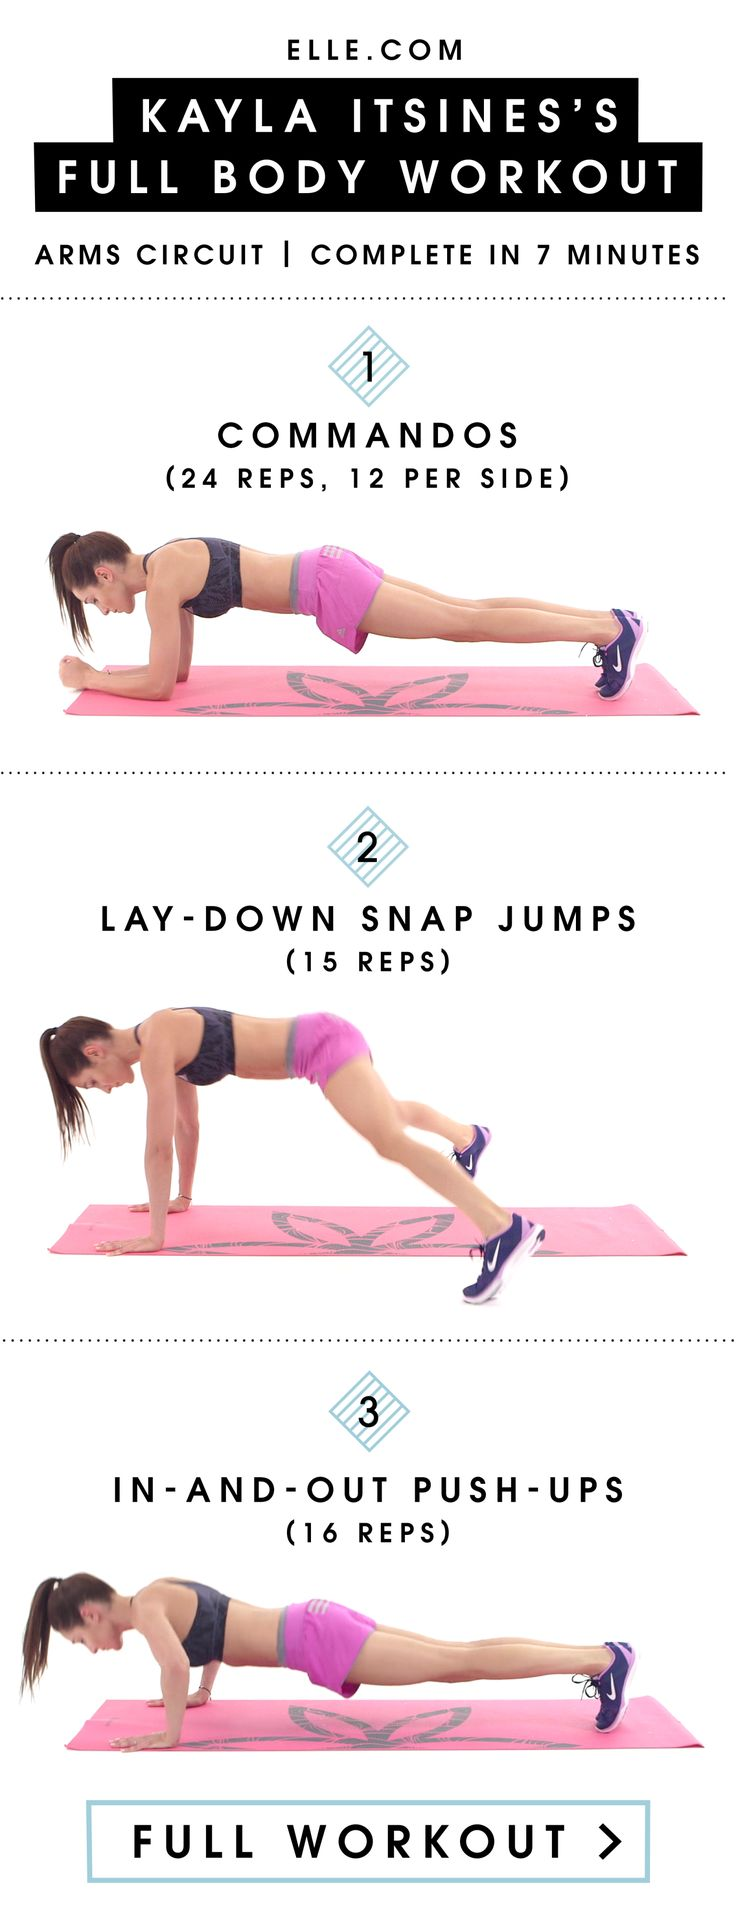 Get Toned Arms for 2016 With These 3 Exercises from Kayla Itsines  - ELLE.com